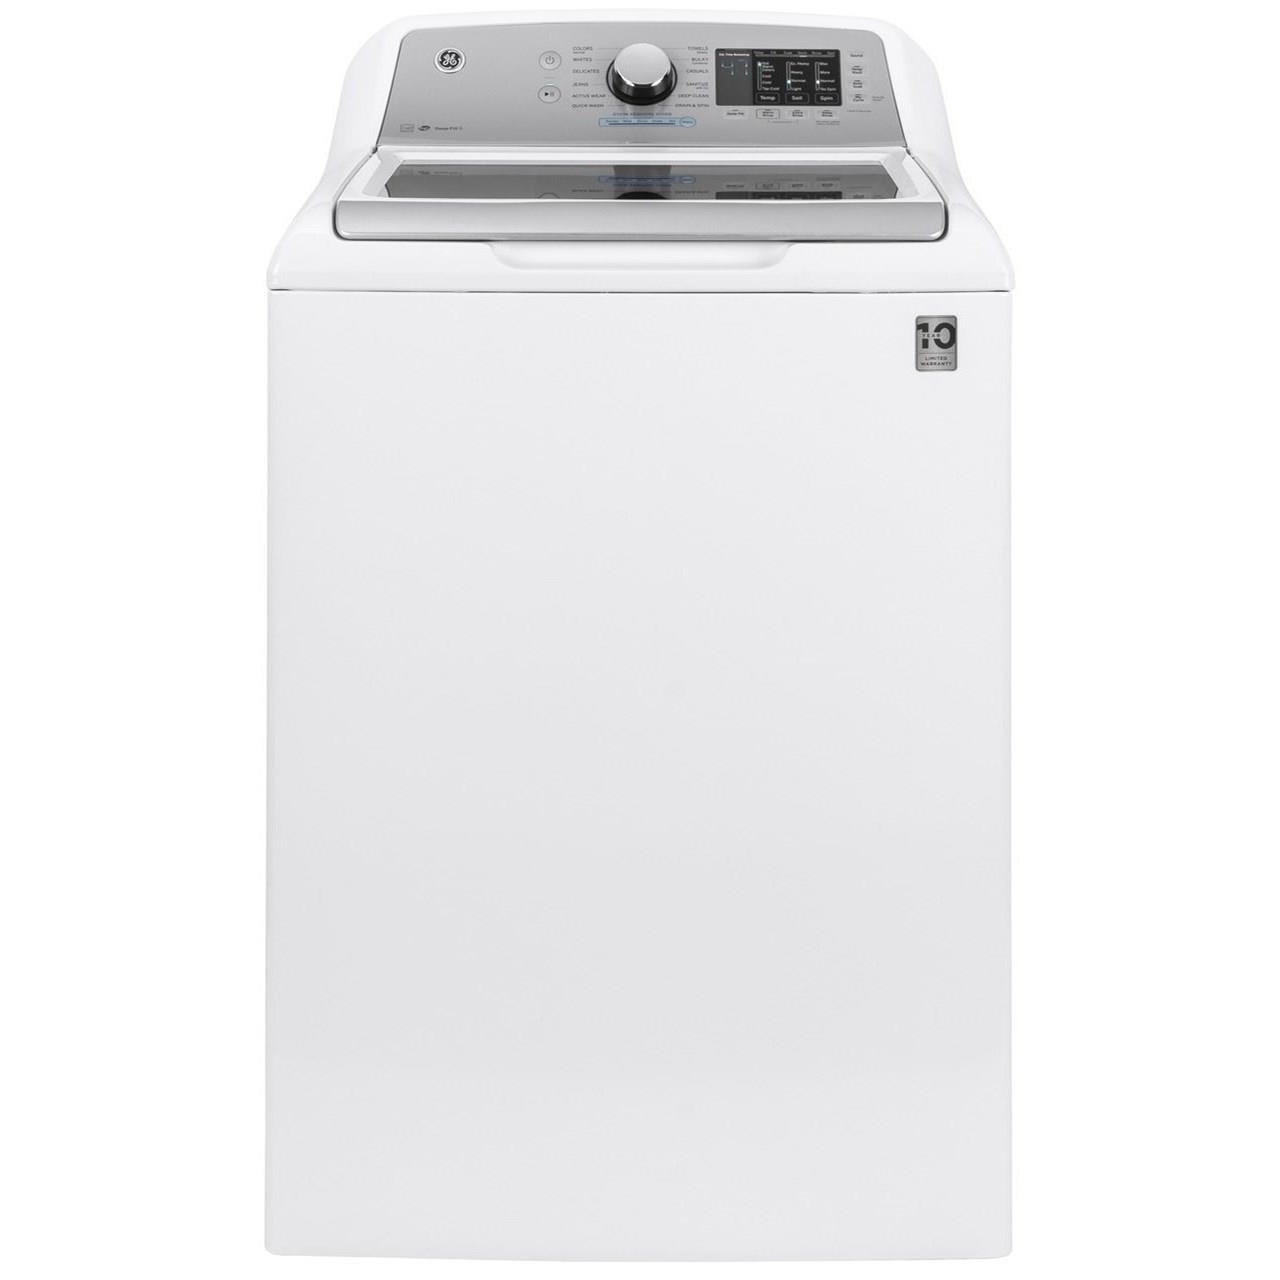 Home Laundry GE® 4.8 cu. ft. Capacity Washer by GE Appliances at VanDrie Home Furnishings